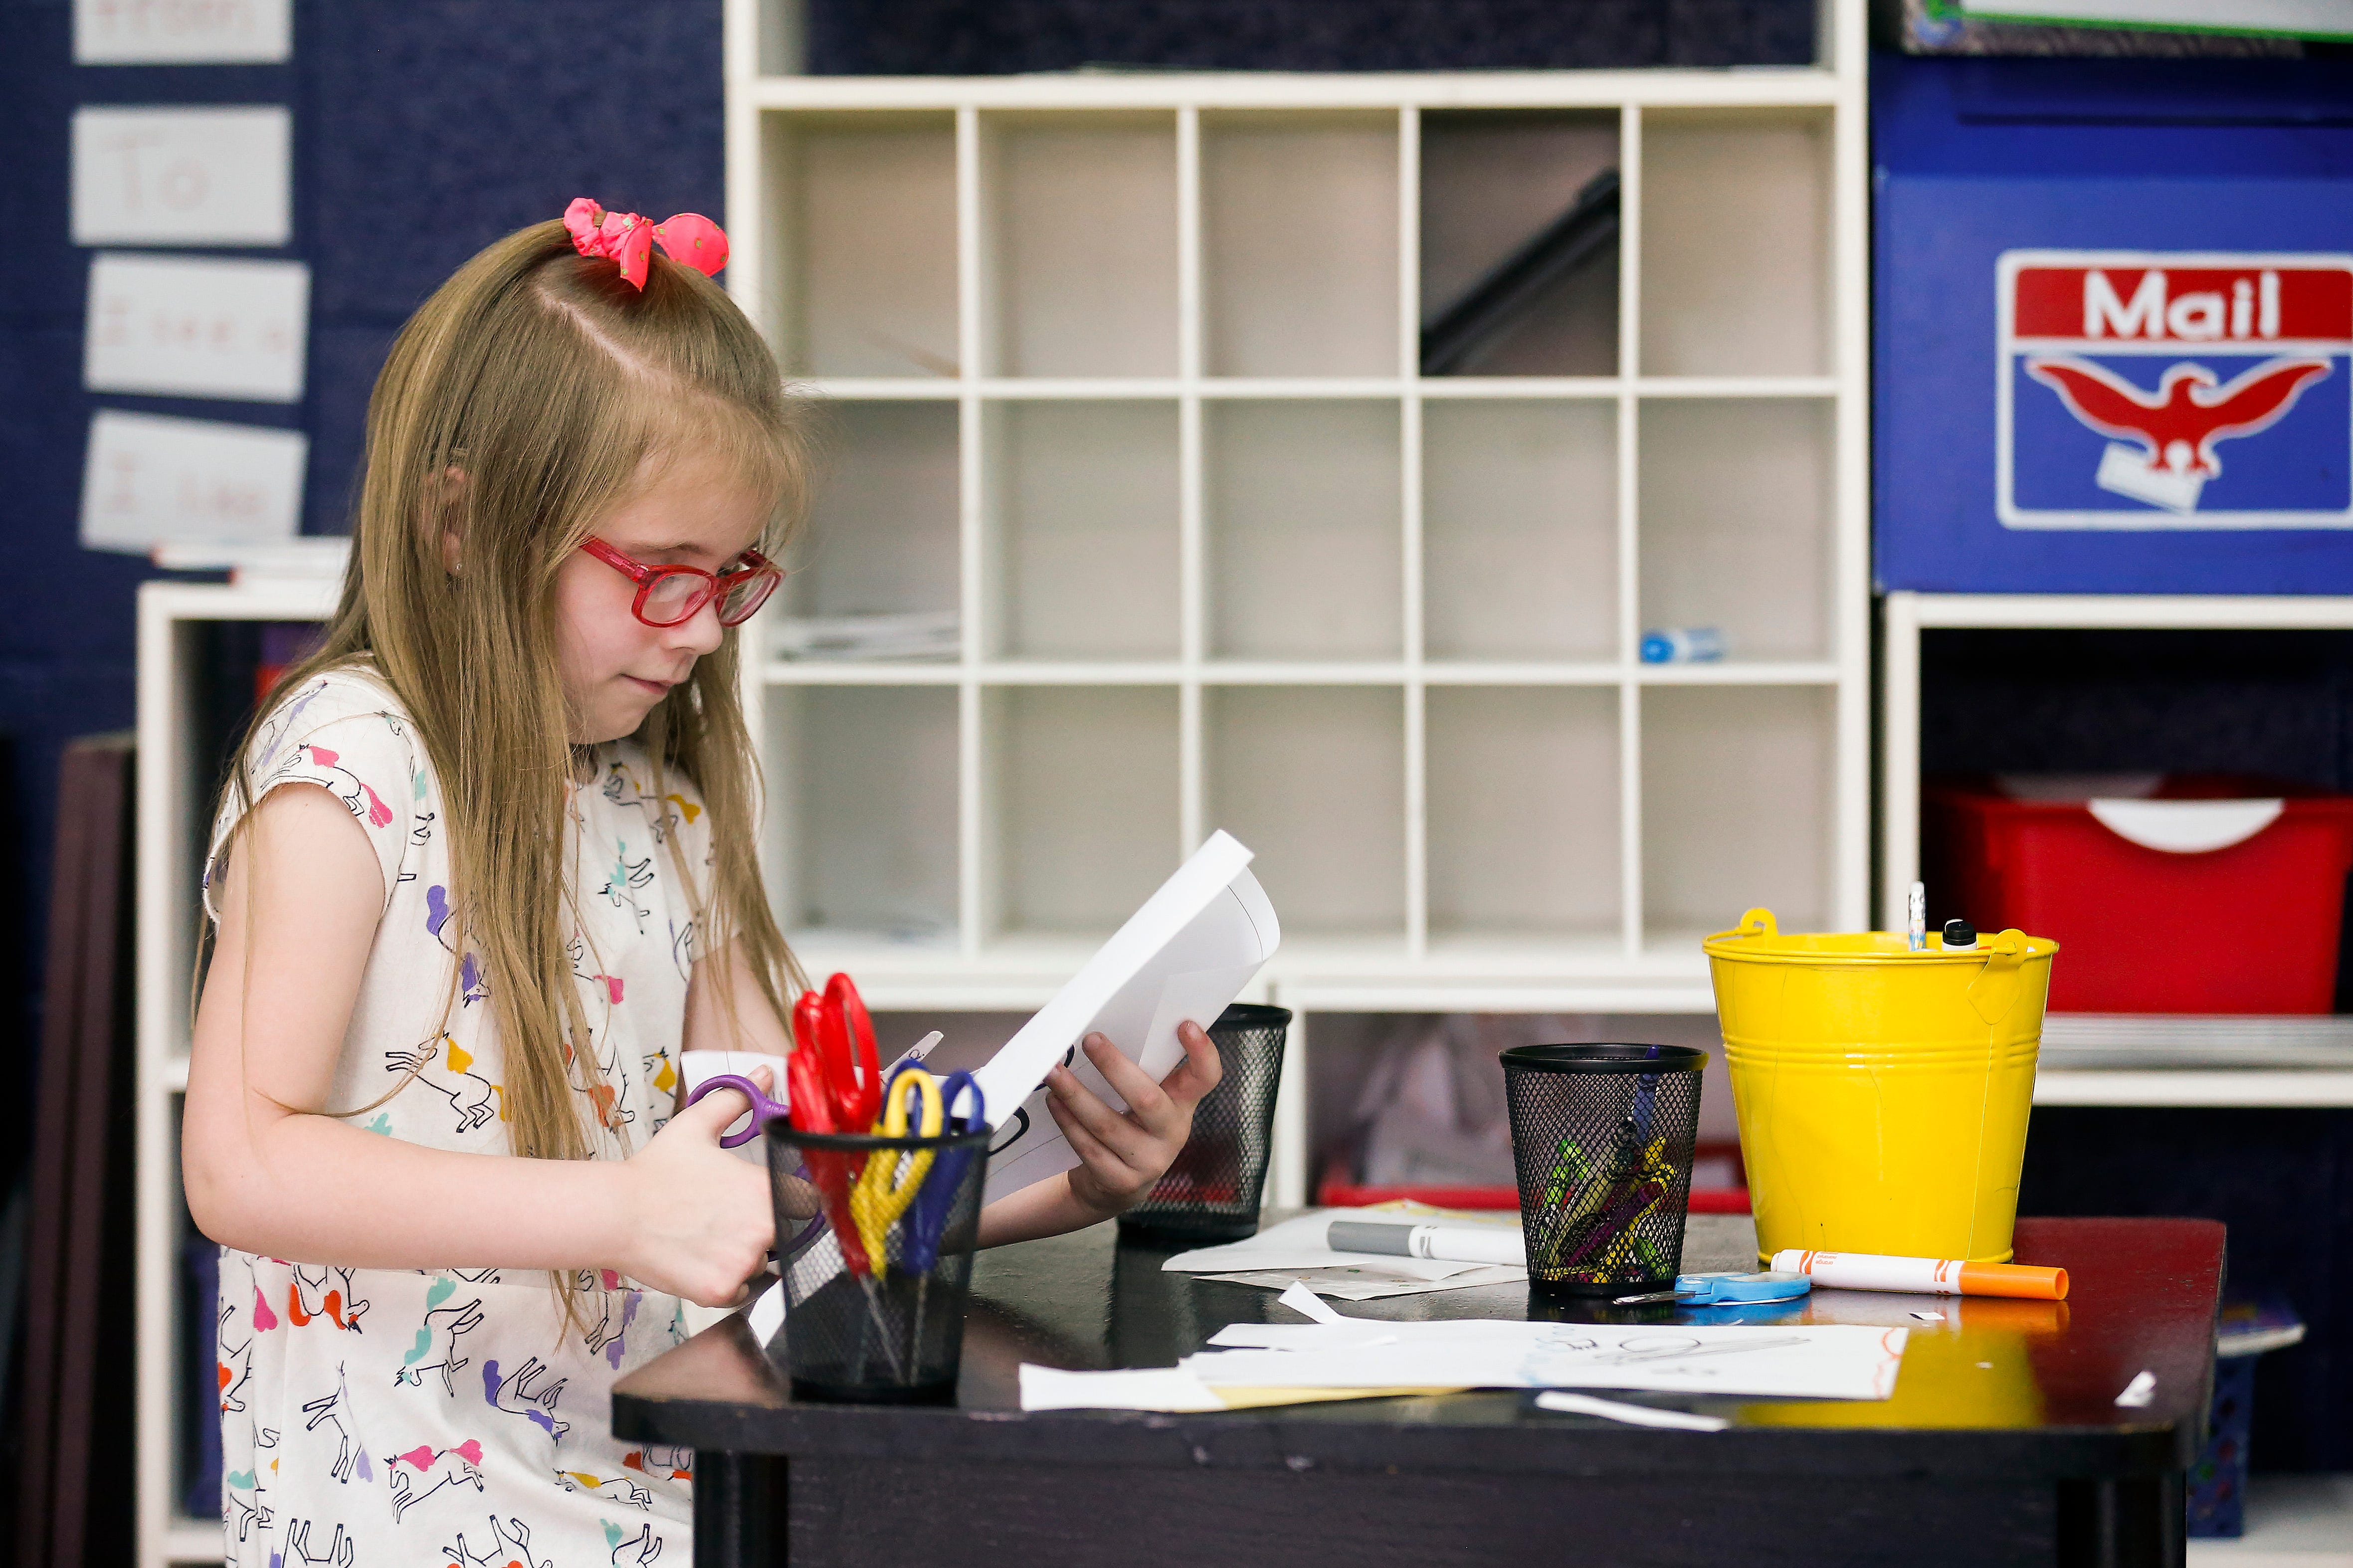 Harley May works on a project in Michelle Pickett's kindergarten class at Cowden Elementary School on Tuesday, April 23, 2019.